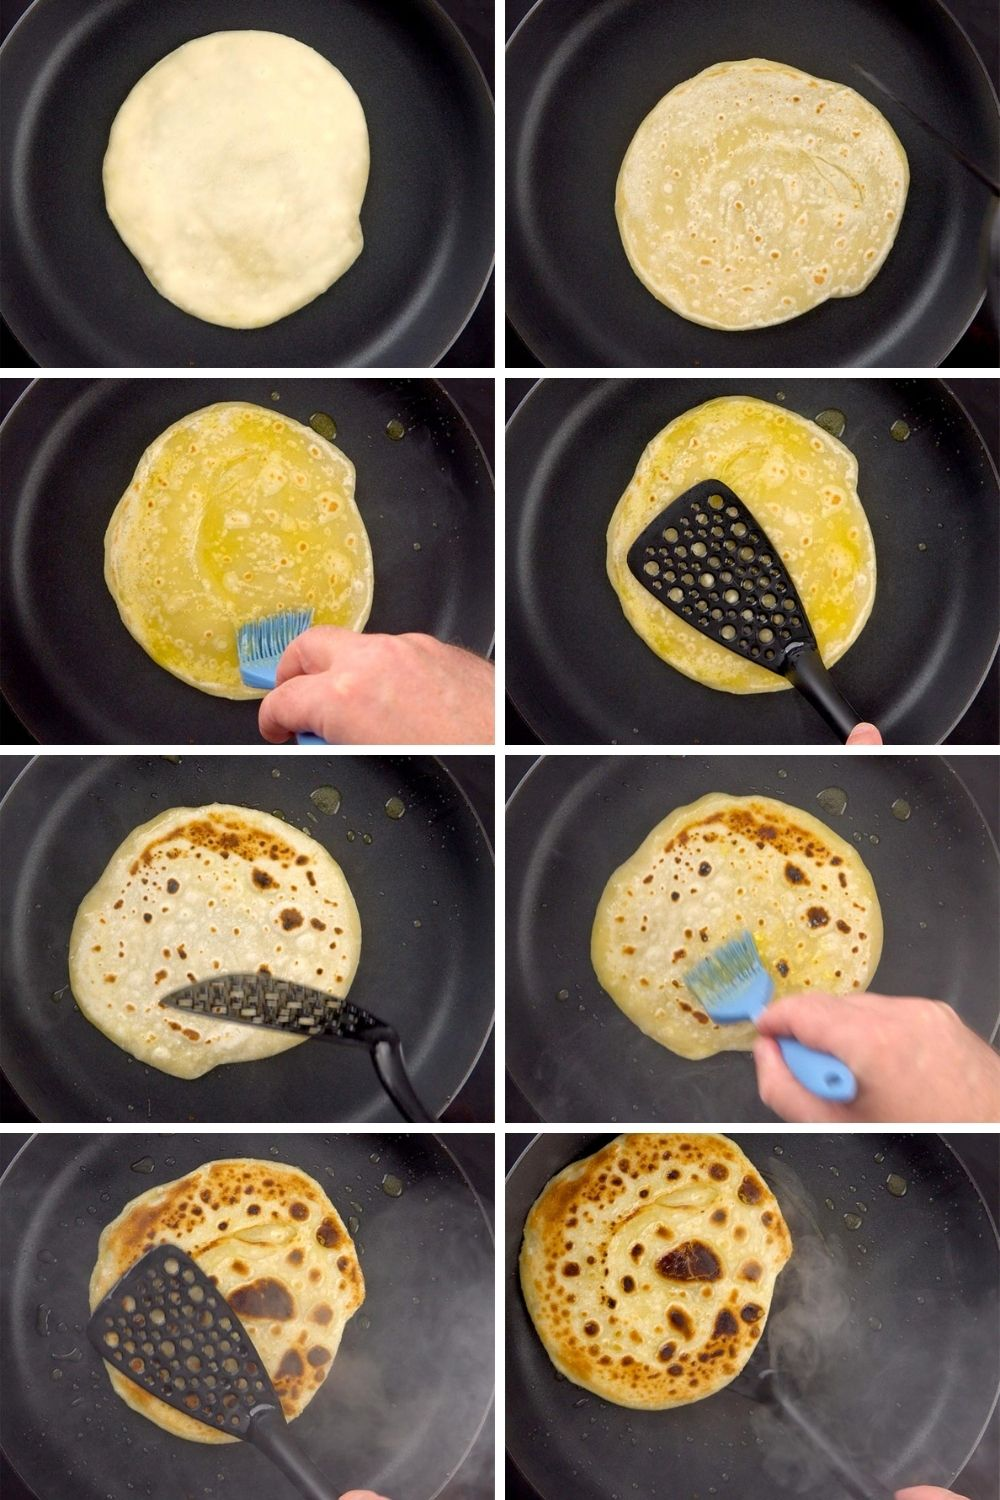 cooking the paratha